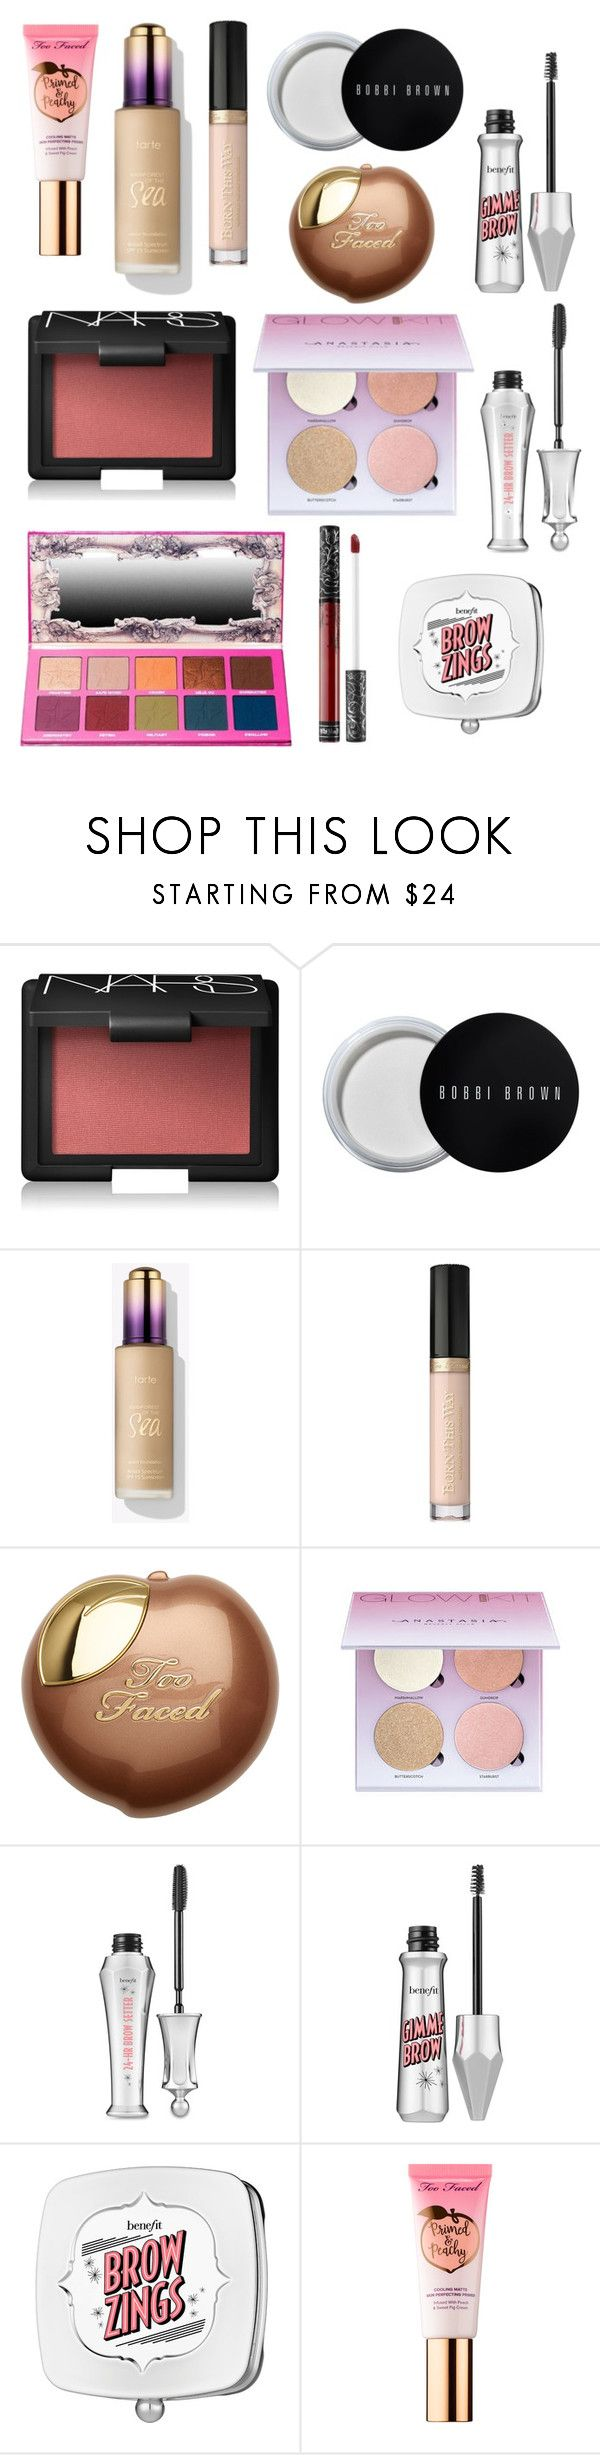 """""""Makeup for Tuesday"""" by april-baby123 ❤ liked on Polyvore featuring beauty, NARS Cosmetics, Bobbi Brown Cosmetics, Too Faced Cosmetics, Anastasia Beverly Hills, Benefit, Sephora Collection, Jeffree Star and Kat Von D"""